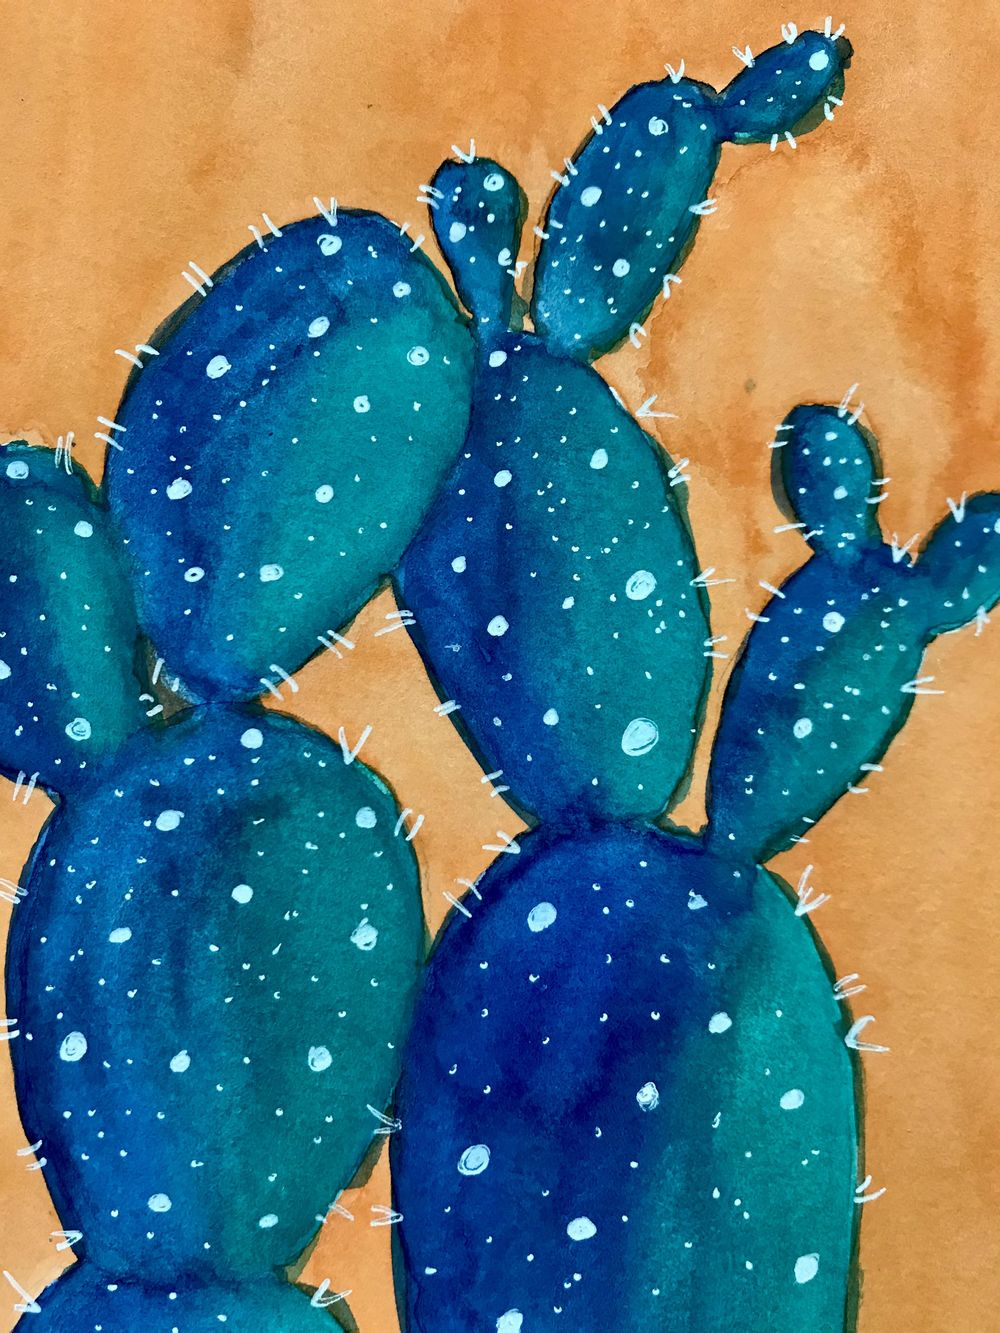 colorful cacti - image 1 - student project